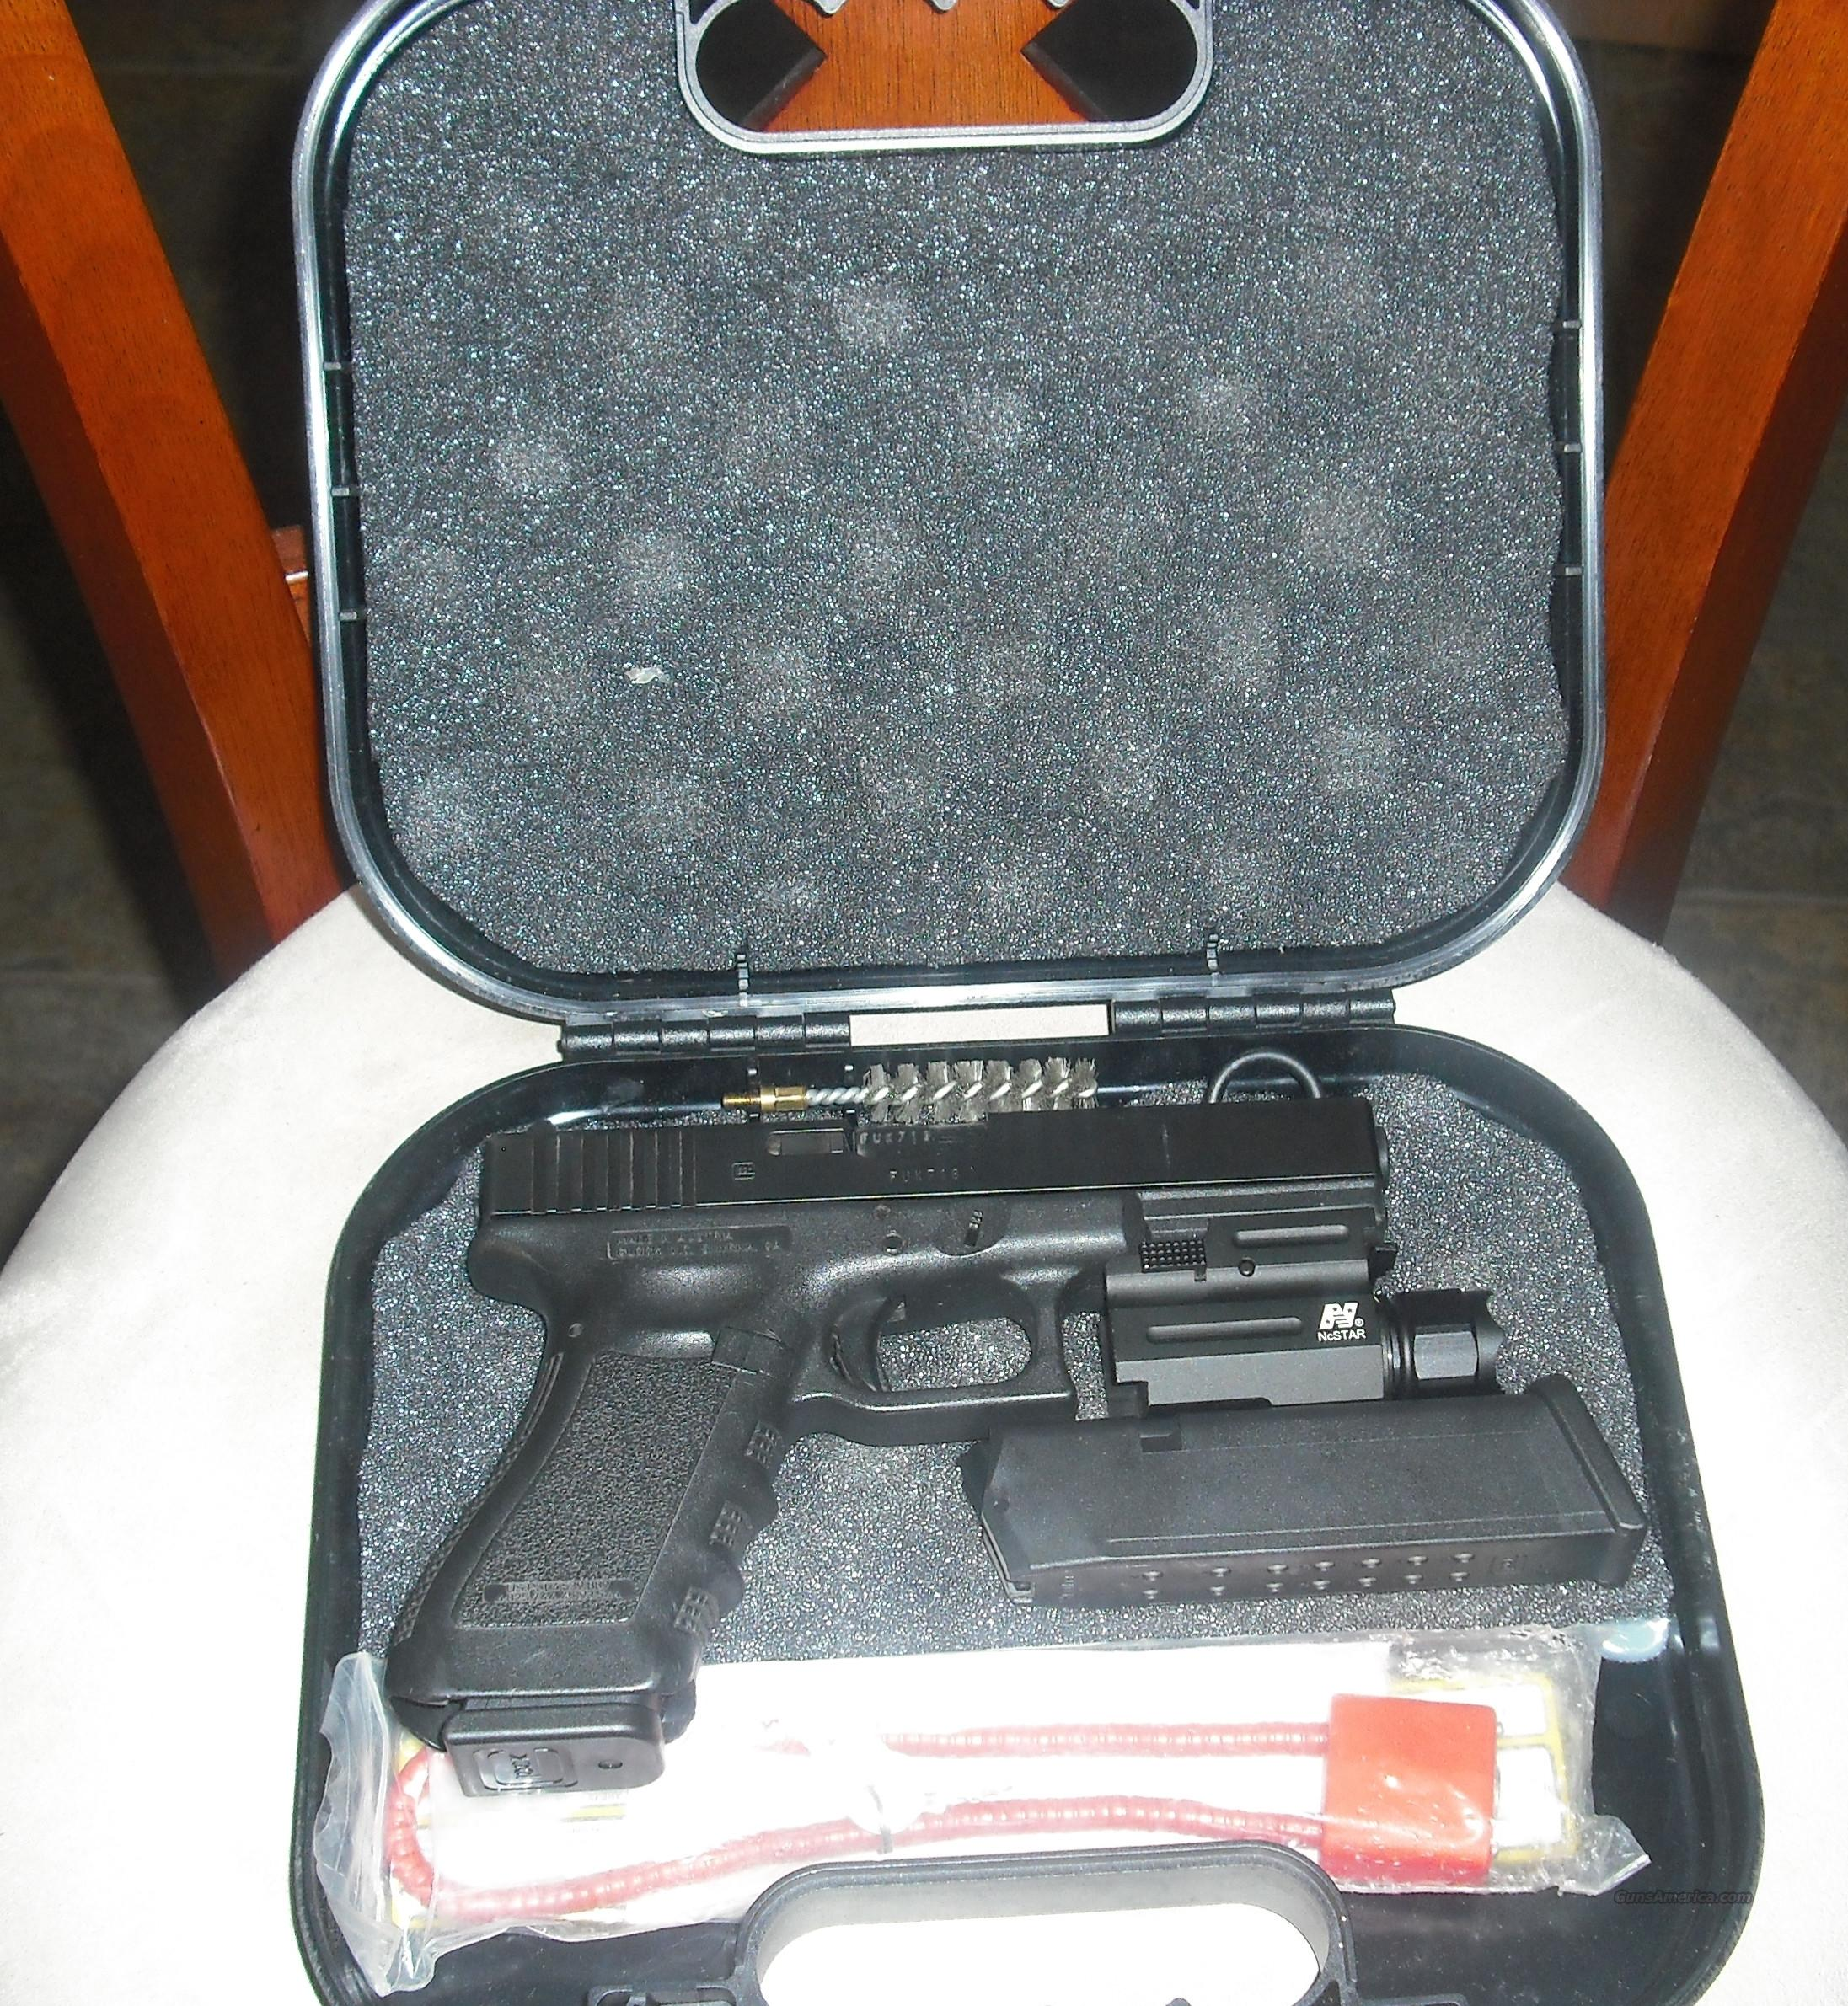 Clean Glock with Tactical Light  Guns > Pistols > Glock Pistols > 17